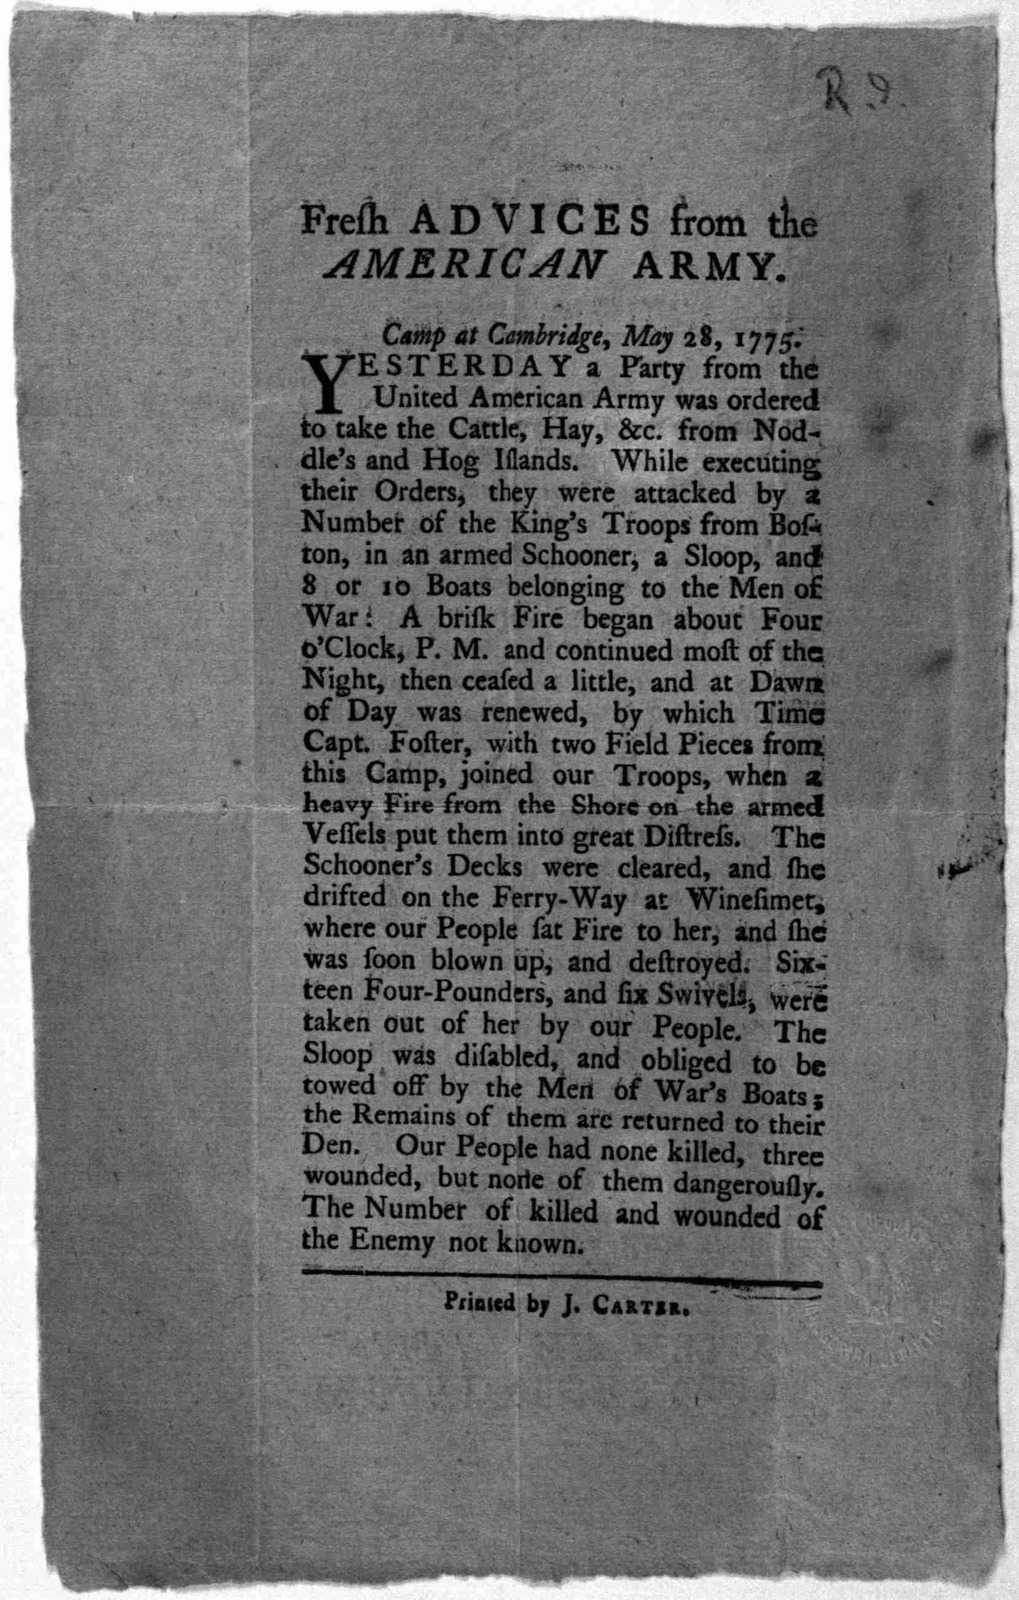 Fresh advices from the American army. Camp at Cambridge, May 28, 1775. Yesterday a party from the United American army was ordered to take the cattle, hay, &c. from Noddle's and Hog Islands ... [Providence] Printed by J. Carter. [1775].